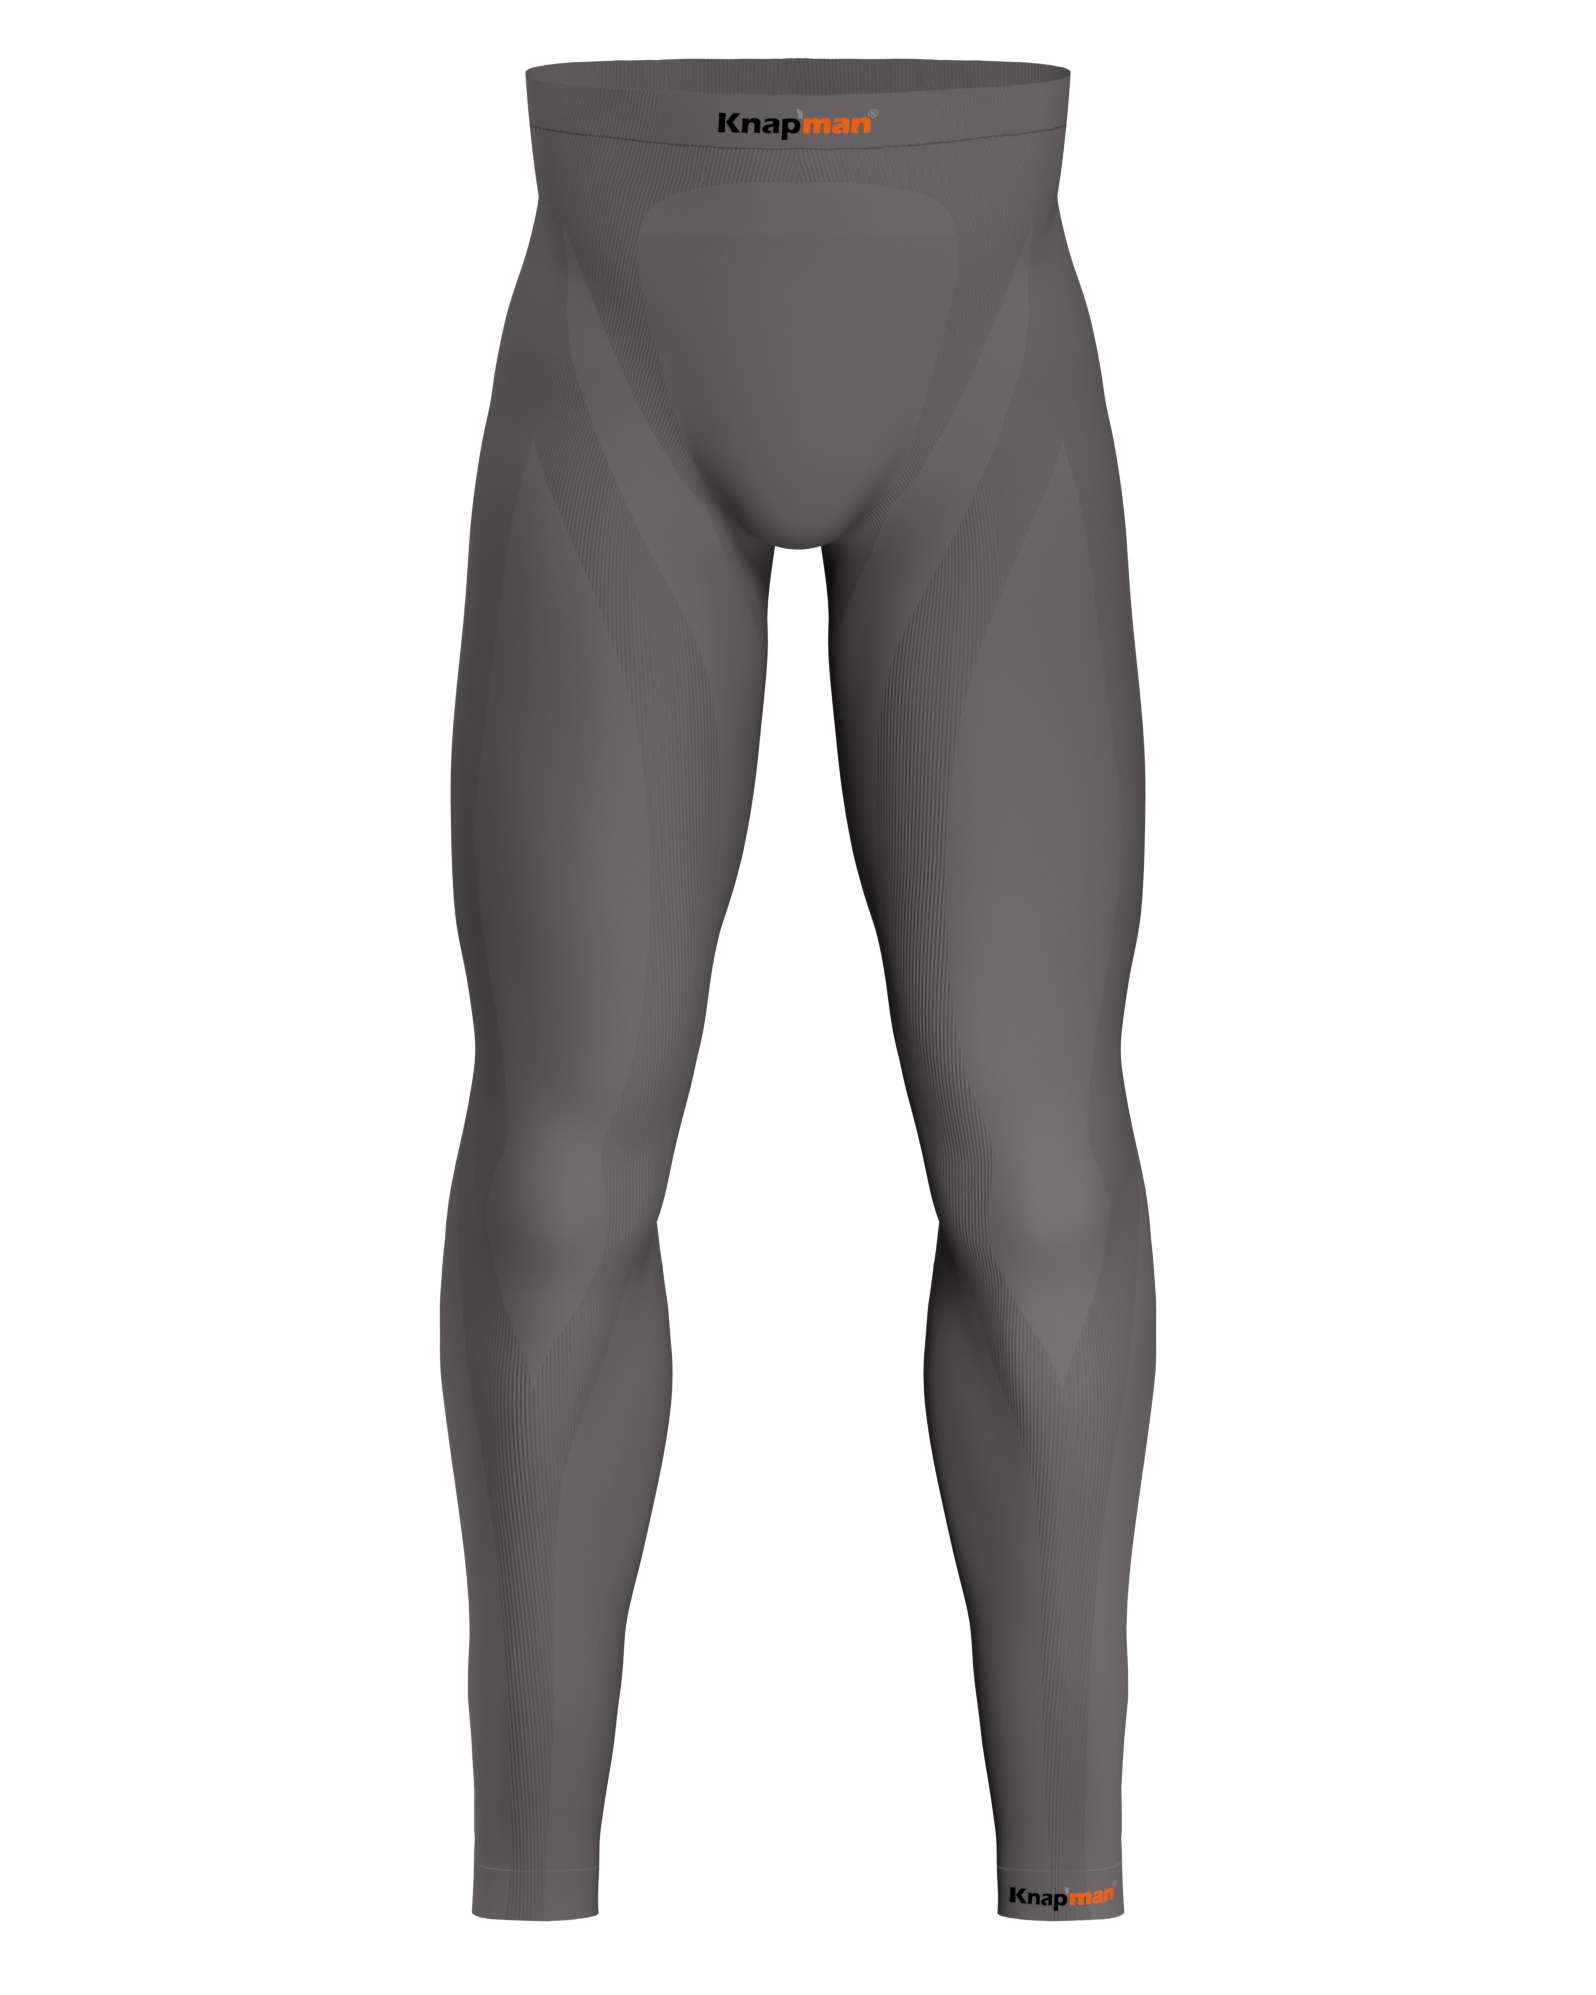 Knap'man Zoned Compression Tights 45% grau